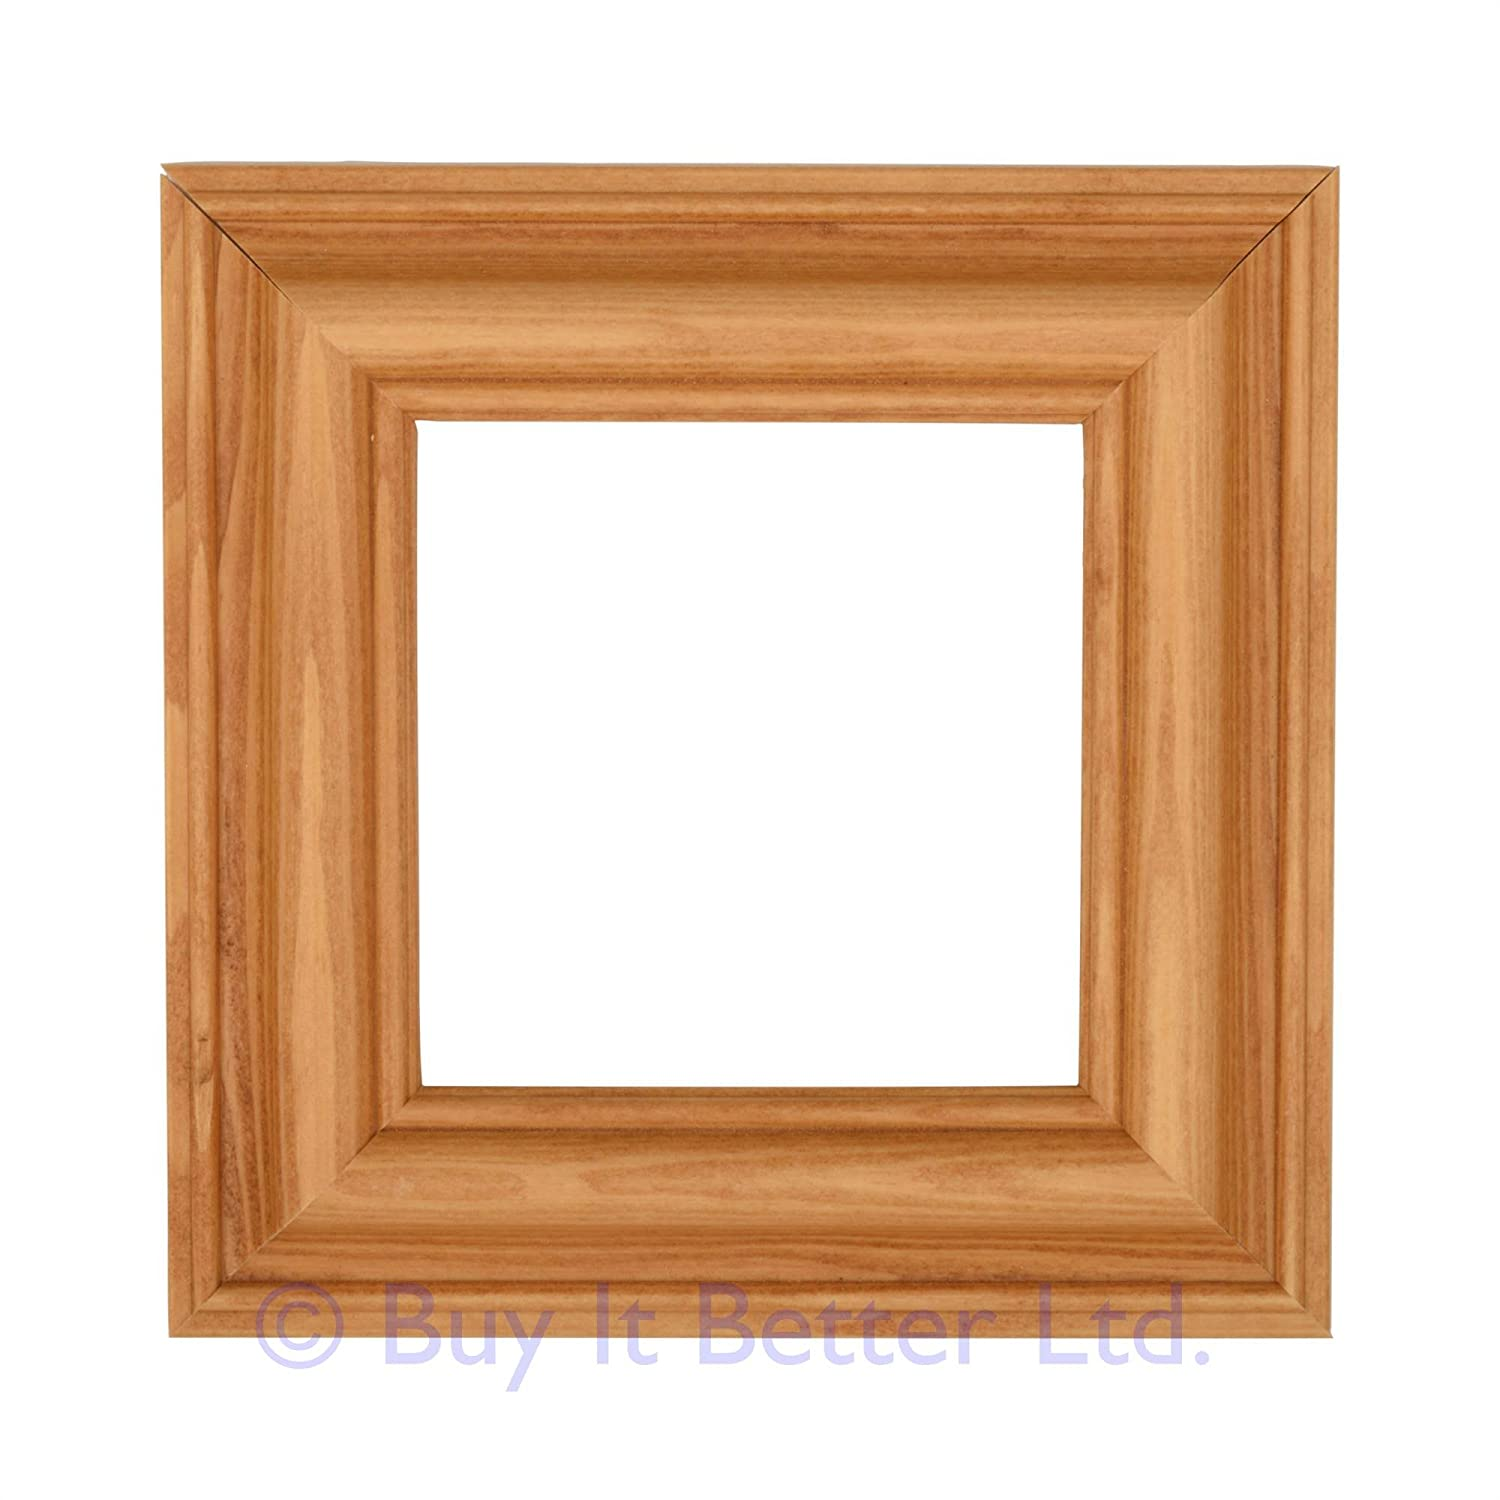 Switch Surround Frame Cover Finger Plate Contemporary Solid Old Varnished Pine Buy It Better Limited